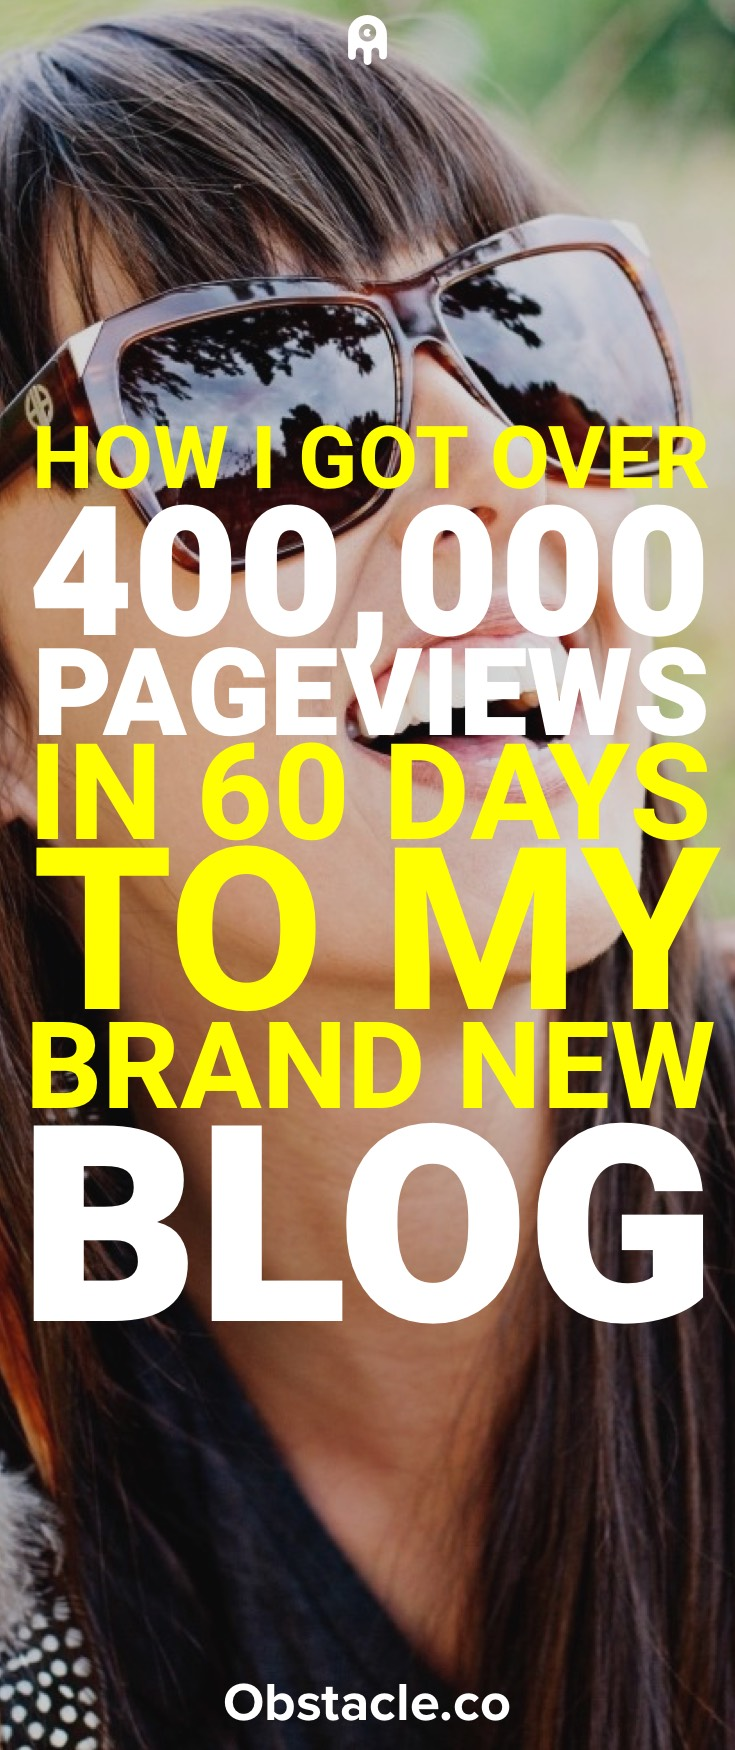 Pinterest Traffic: How I Got Over 400,000 Pageviews in 60 Days for My Brand New Blog